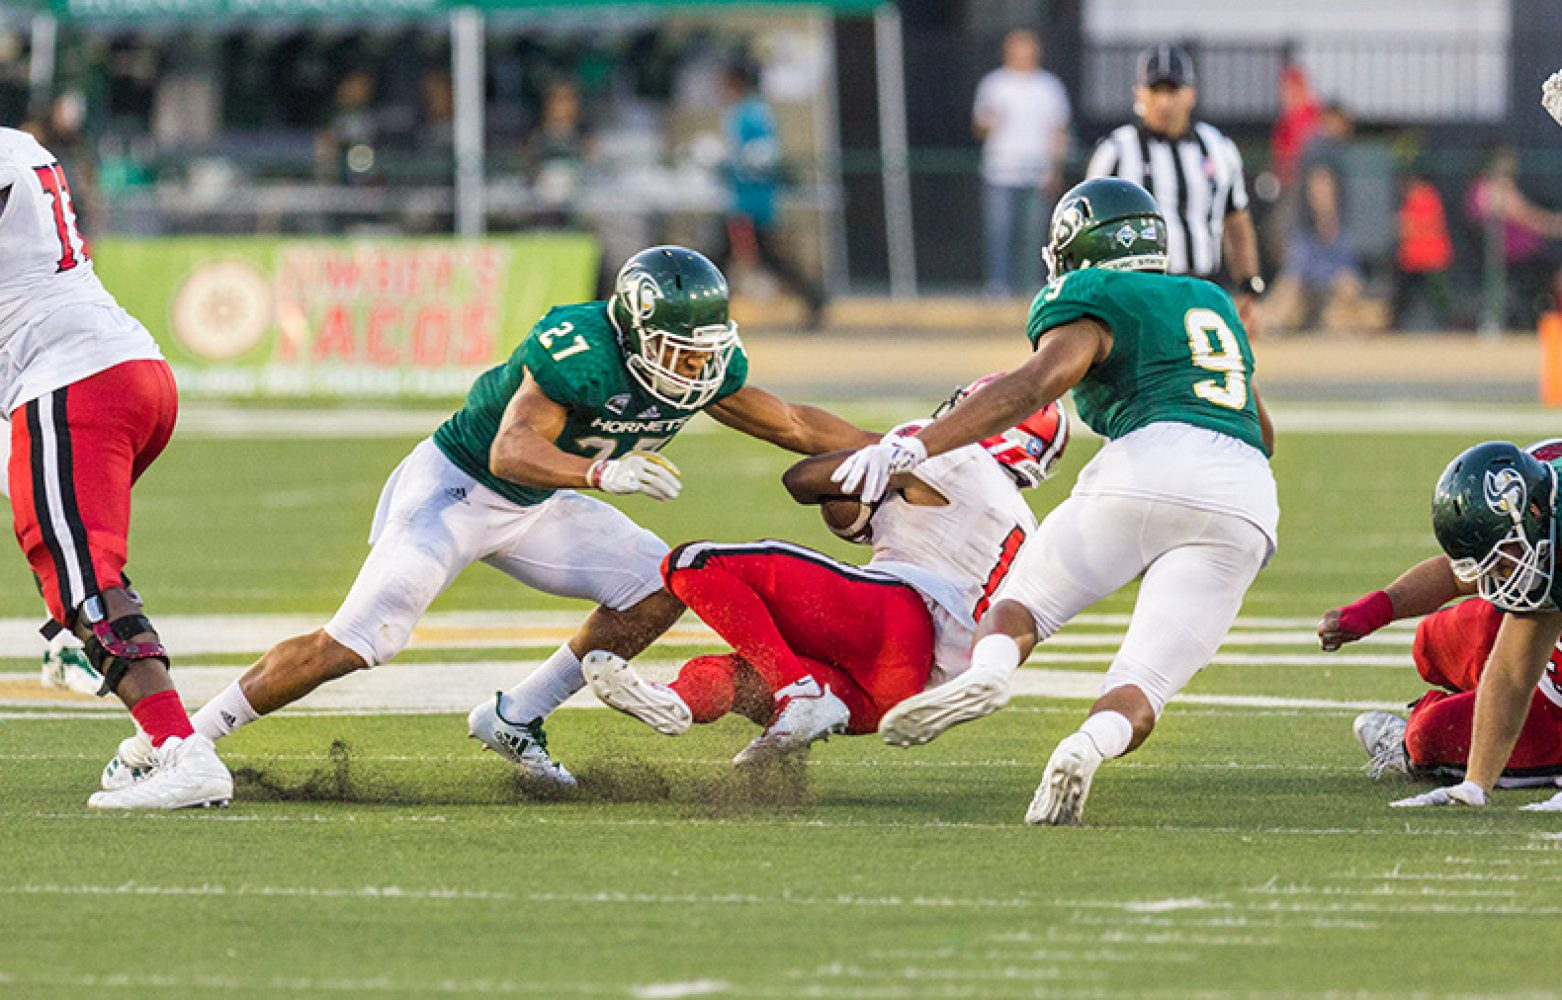 Sacramento State sophomore defensive back Quincy Jountti, left, and junior linebacker Malcom Thomas, right, take down University of the Incarnate Word running back Desmond Hite, center, Saturday, Sept. 9 at Hornet Stadium. Sac State won the game 56-22 to advance to 1-1 on the season.